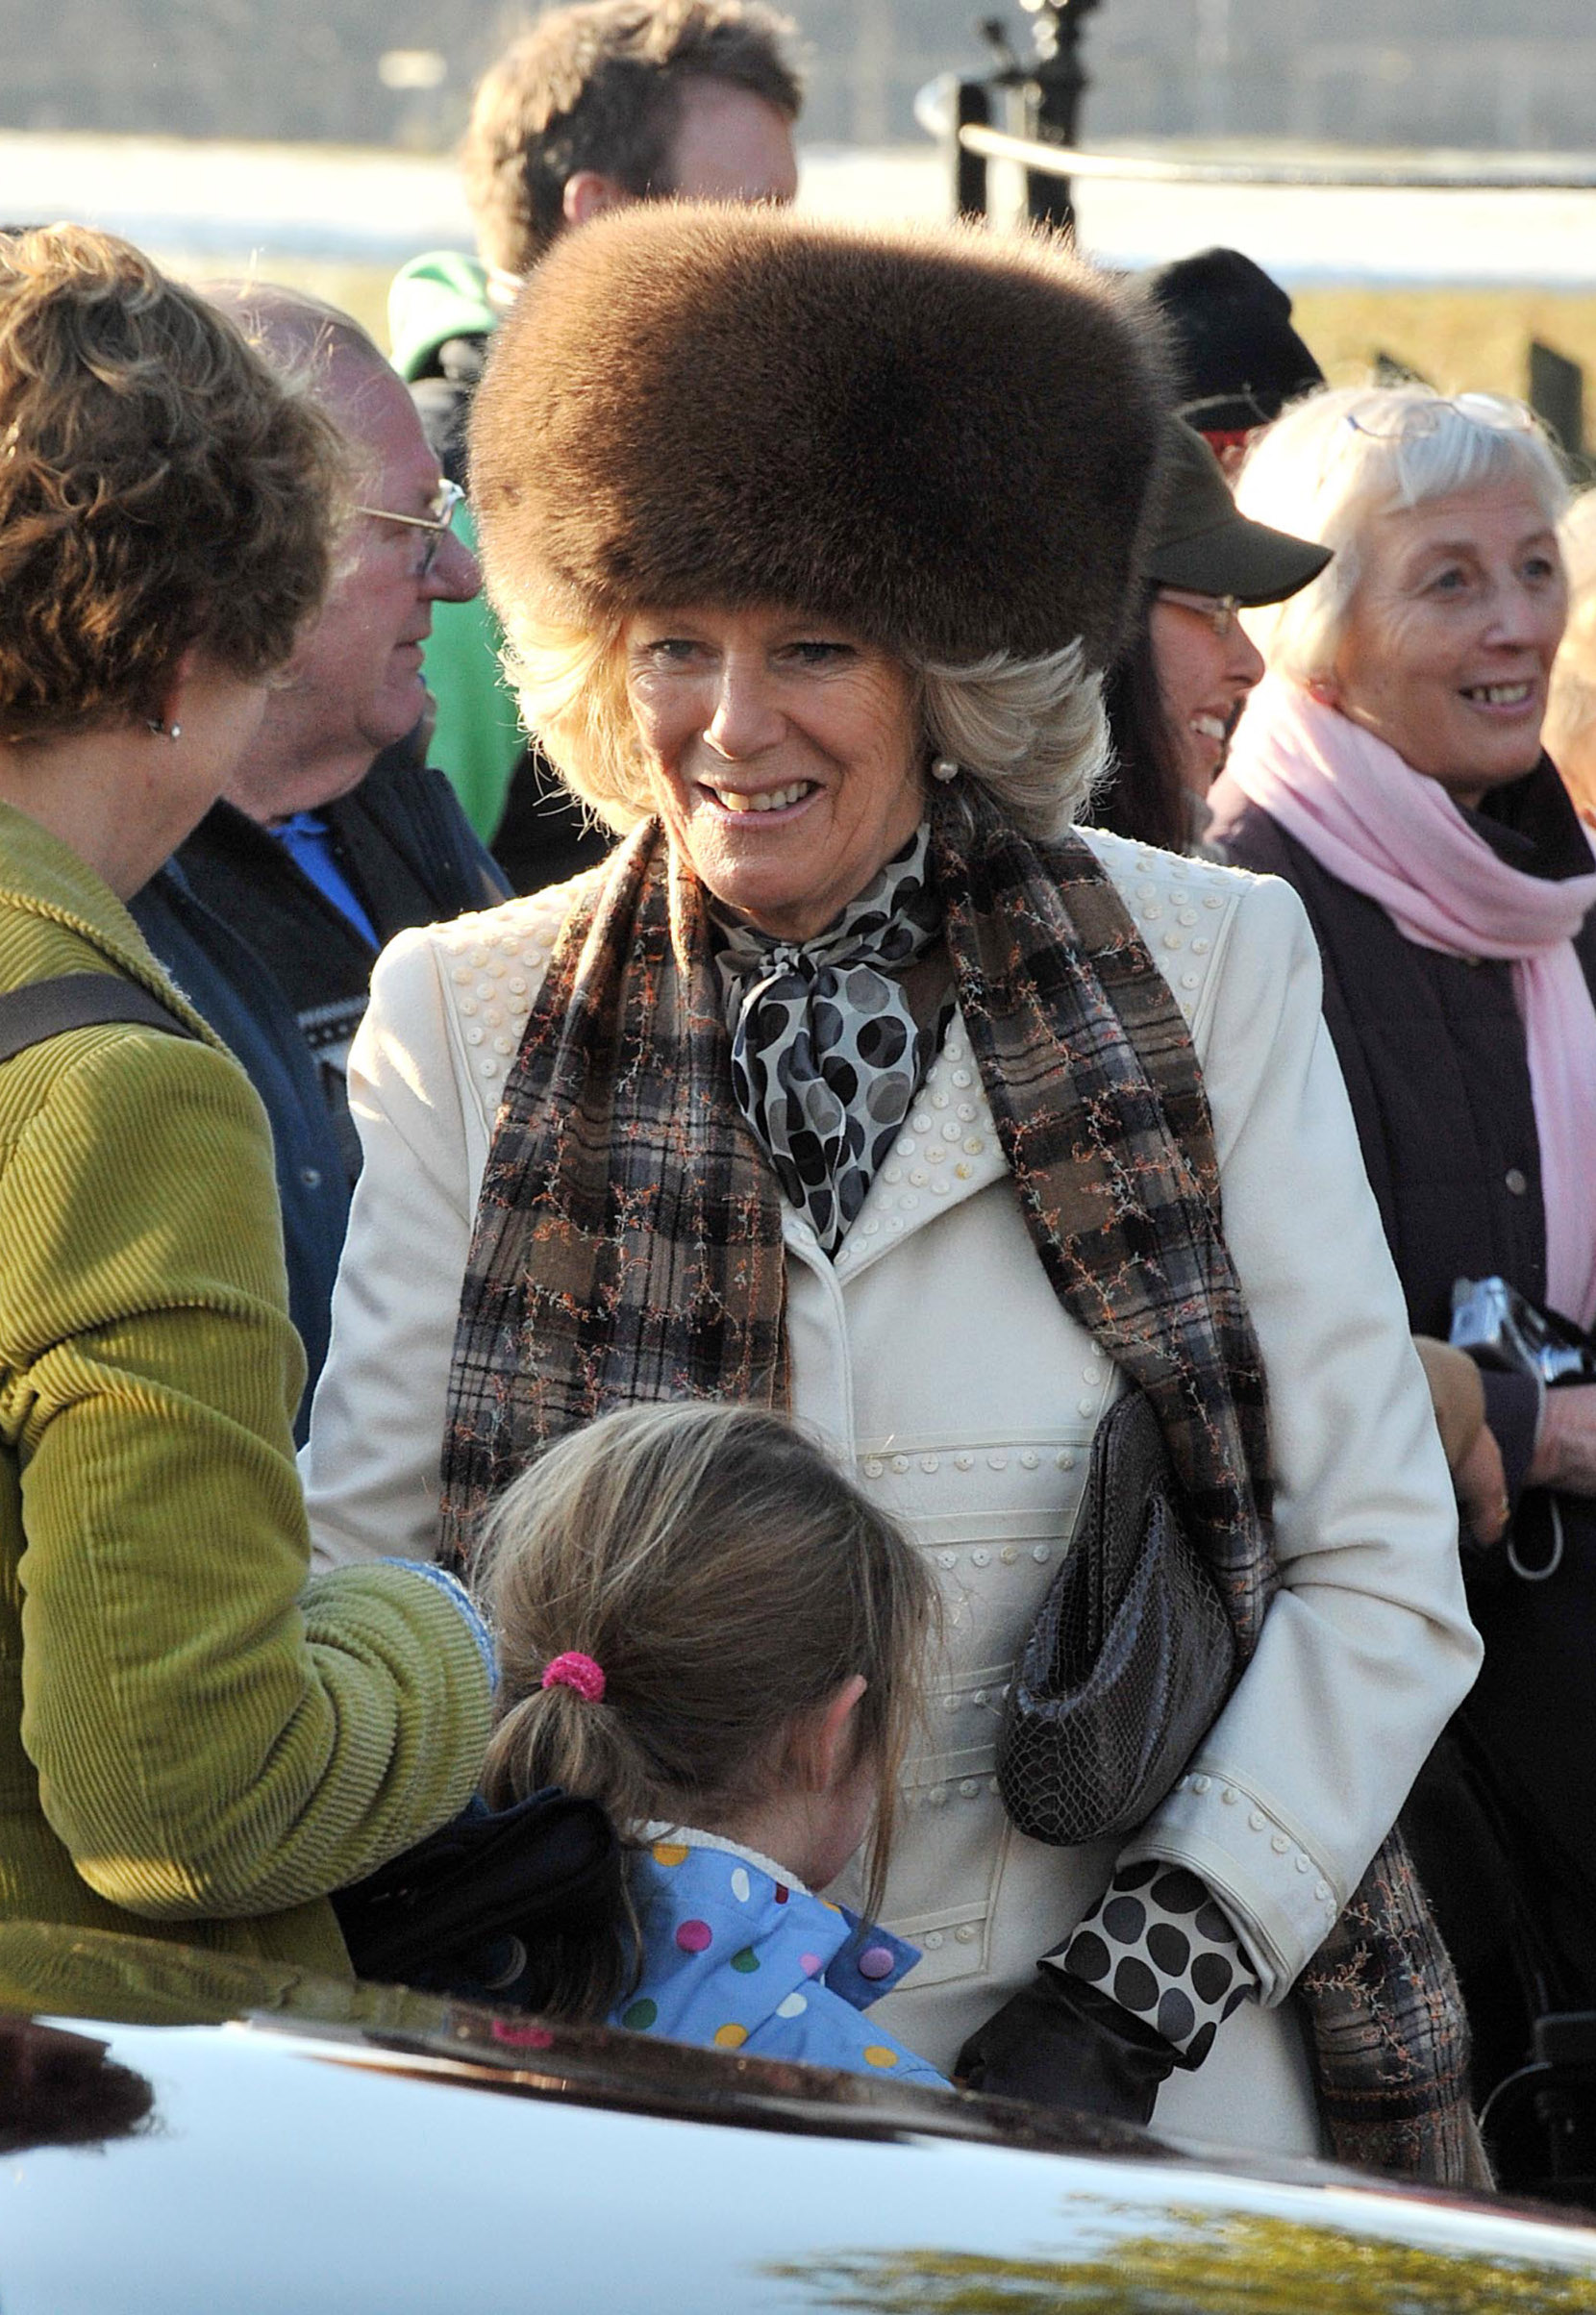 SANDRINGHAM, UNITED KINGDOM - DECEMBER 25:  Camilla, Duchess of Cornwall attends the Christmas Day Church Service with other members of the Royal family, at St Mary's Church on December 25, 2010 in Sandringham, England.  (Photo by Louis Wood - WPA Pool/ Getty Images)